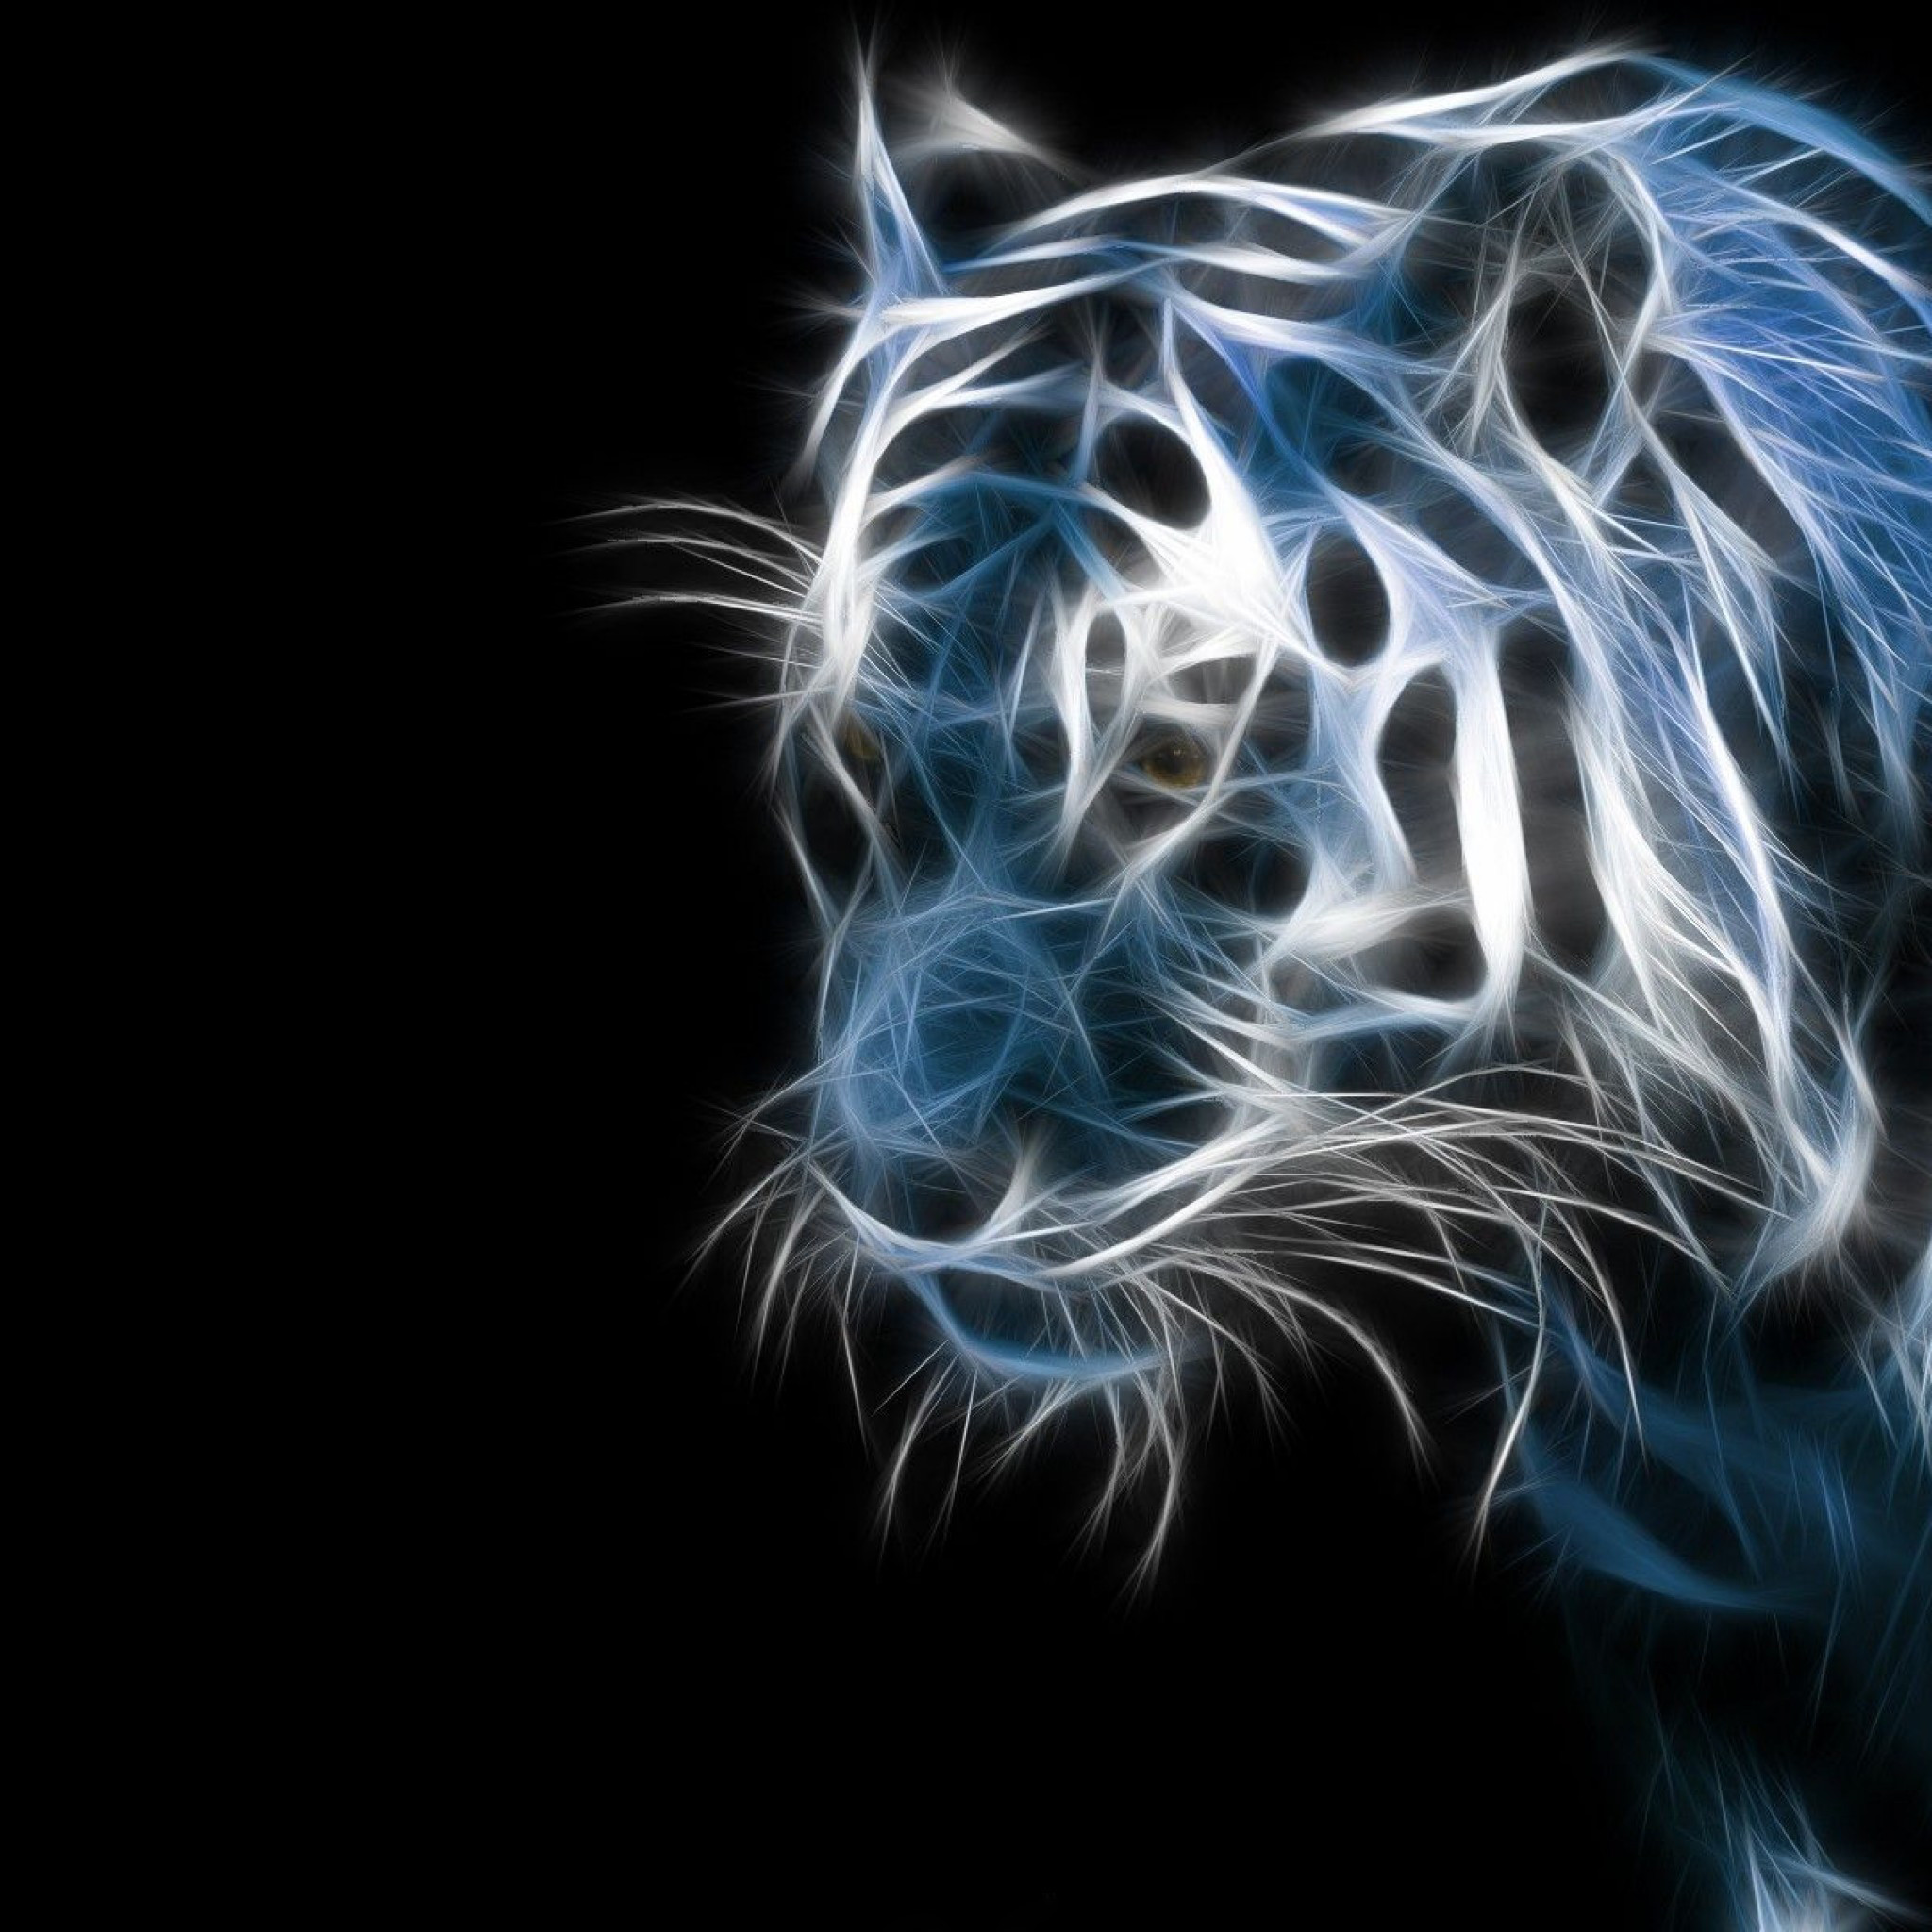 2048x2048 abstract blue apple background cool tiger fractal animal 2048×2048 hd  desktop wallpapers cool images download apple background wallpapers windows  colourfull ...